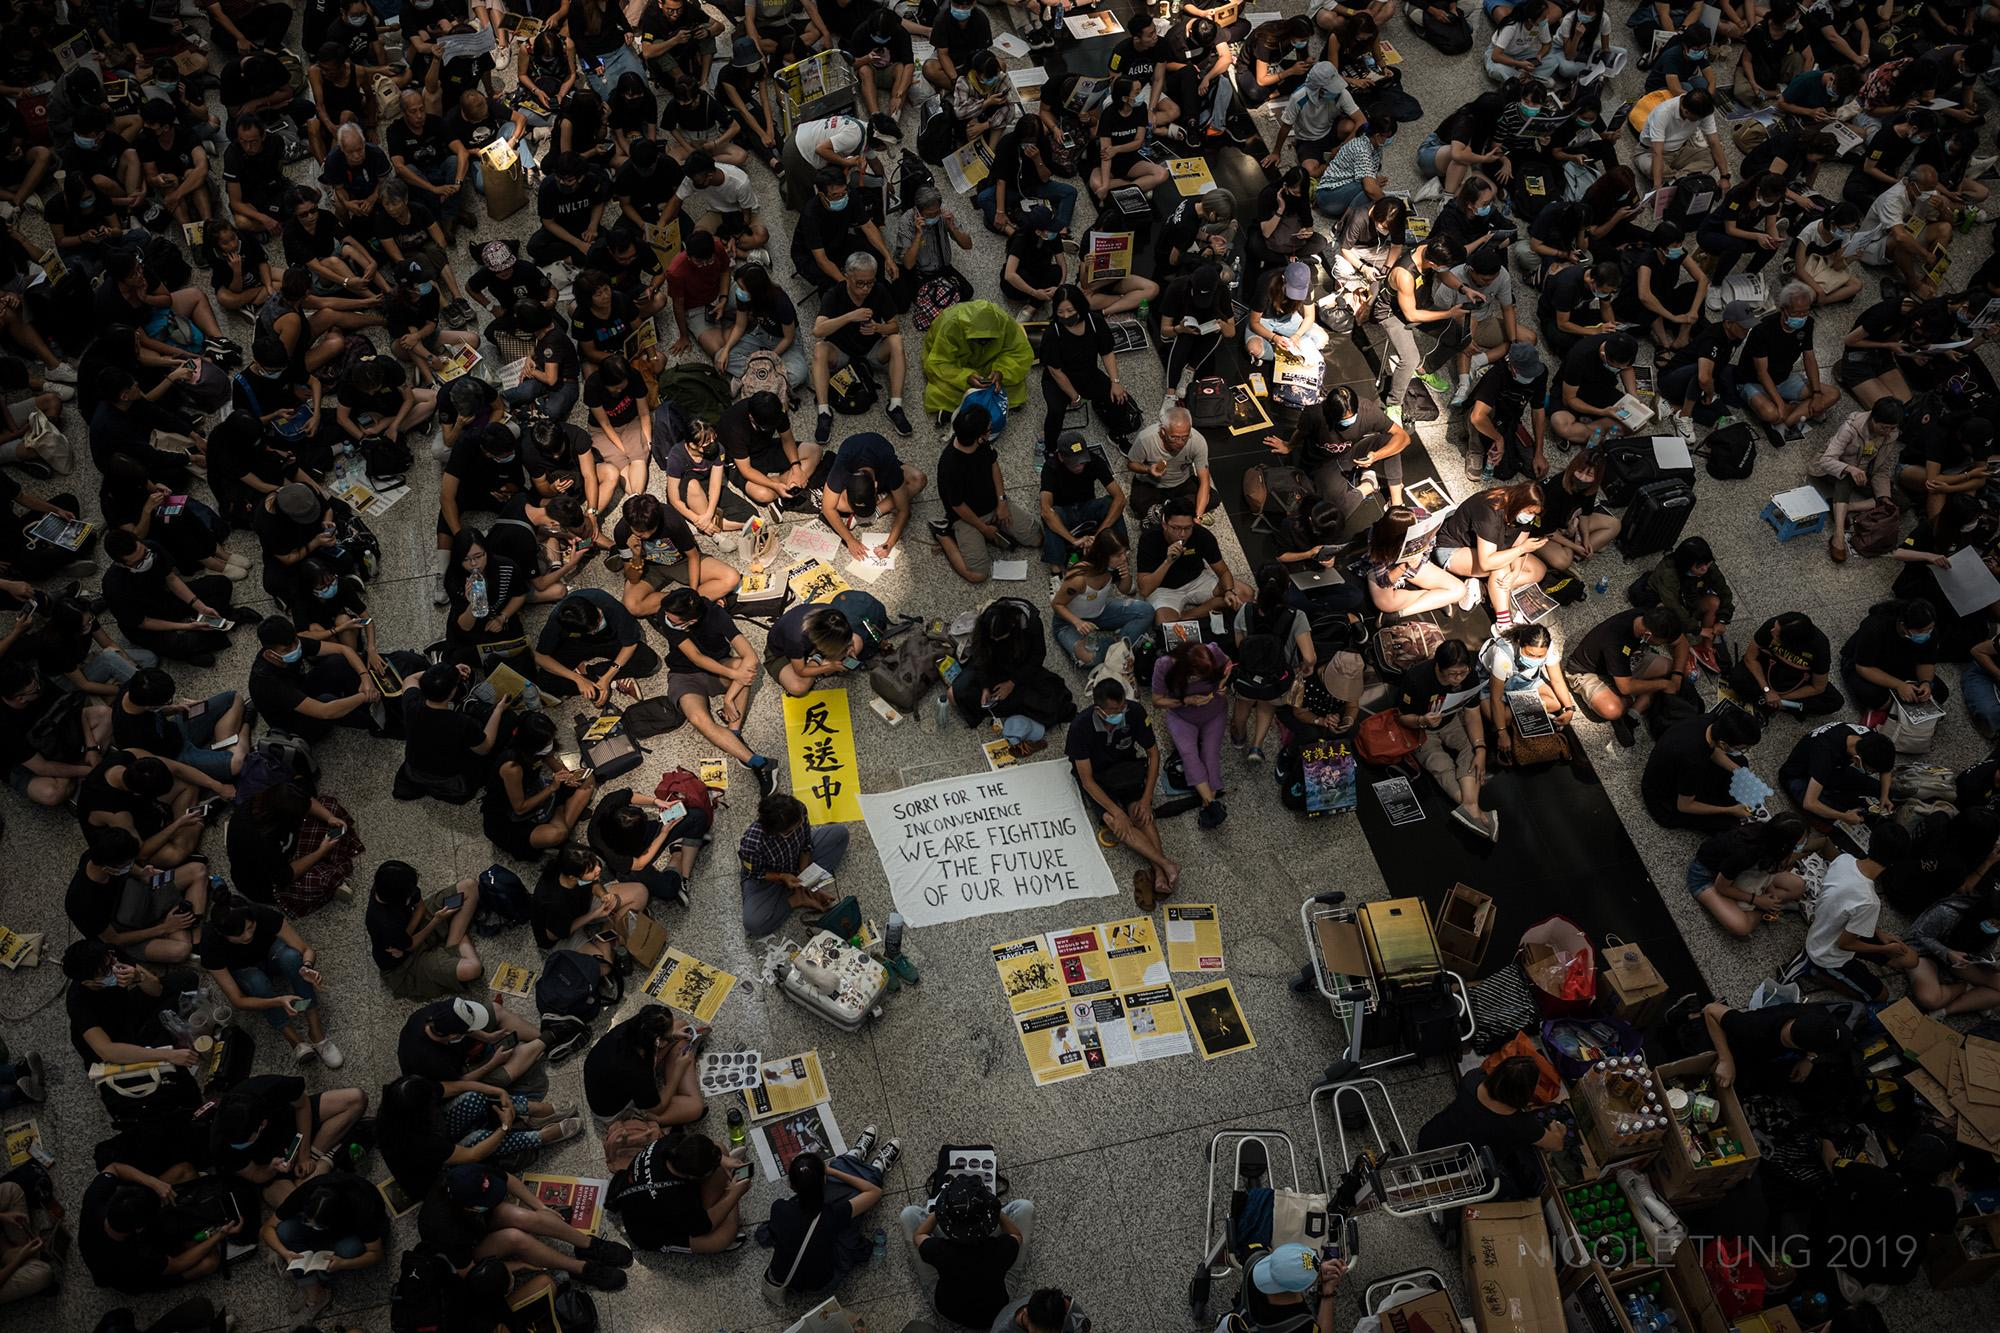 Protestors staged a sit-in at the arrivals hall of the Hong Kong International Airport in Hong Kong, S.A.R. on the first of their three day sit-in at one of Asia's busiest transportation hubs. Protestors hope that their campaign at the airport would help spread the word and launch a mass appeal to international travelers and the media about why demonstrations were continuing in Hong Kong and what people seek from the government. August 2019,